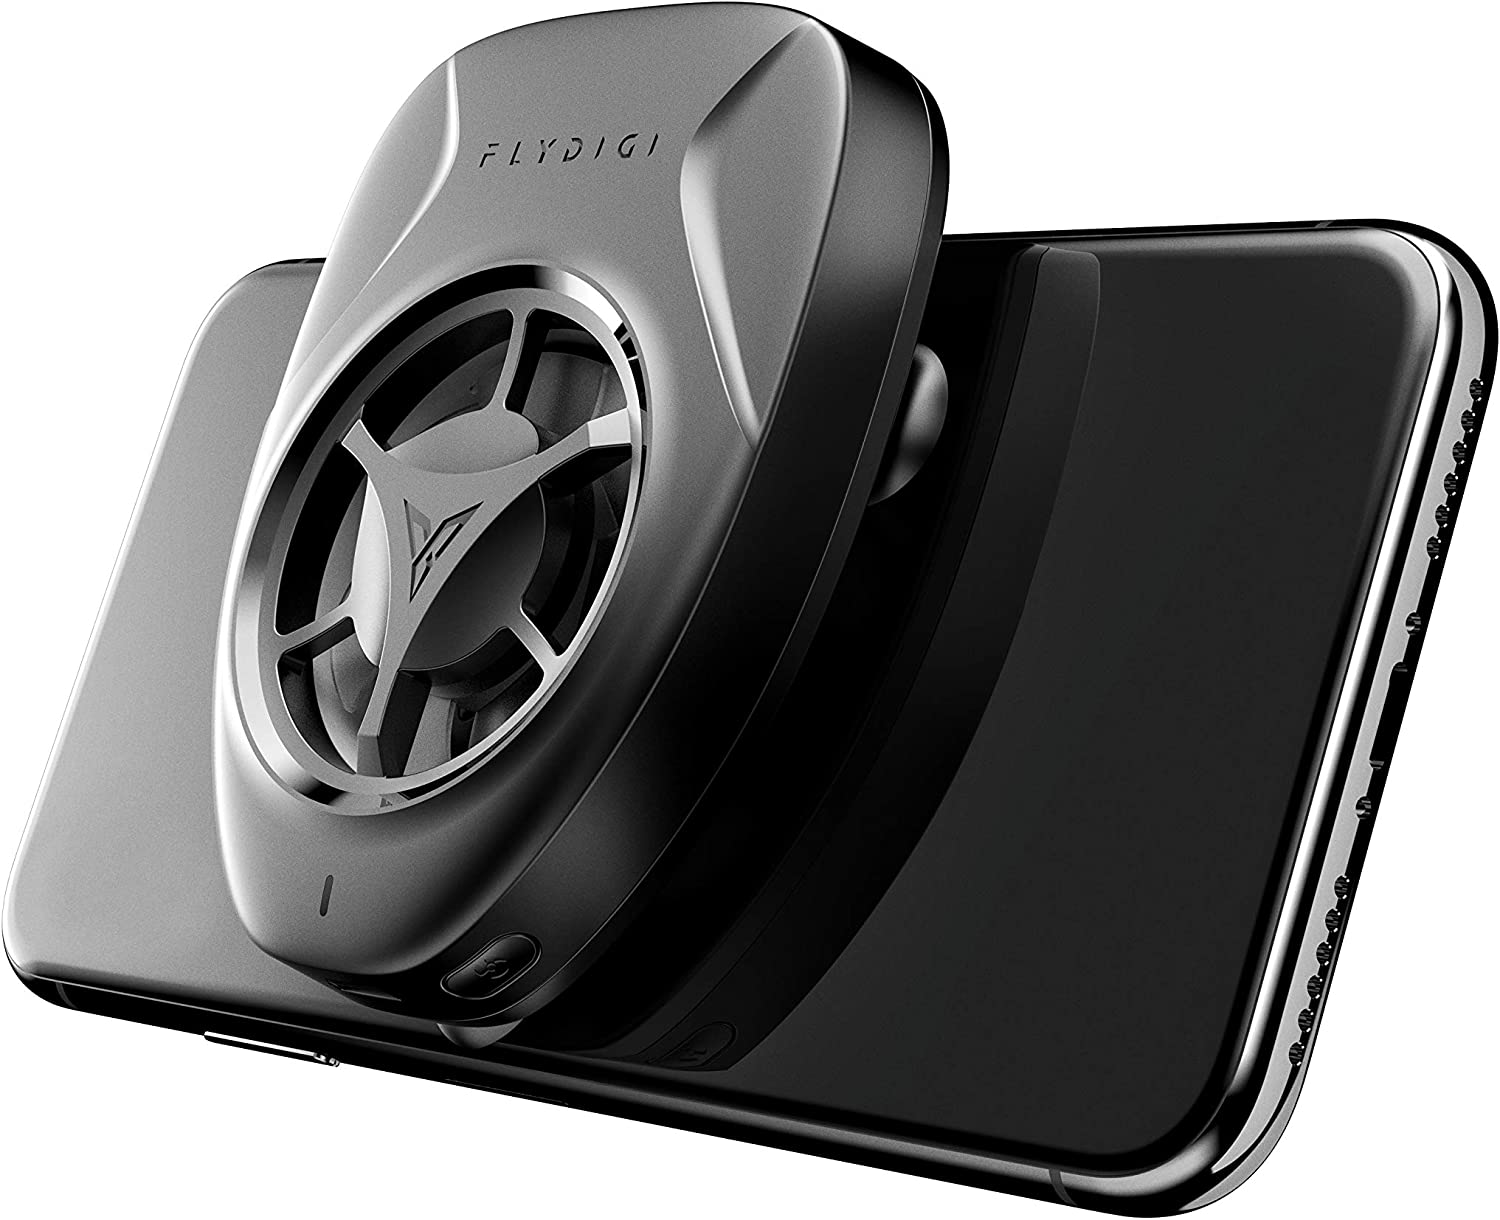 Bounabay Mini Cooling Fan for iOS and Android Phone Ultra Silent Mobile Gaming Dissipate Cooler